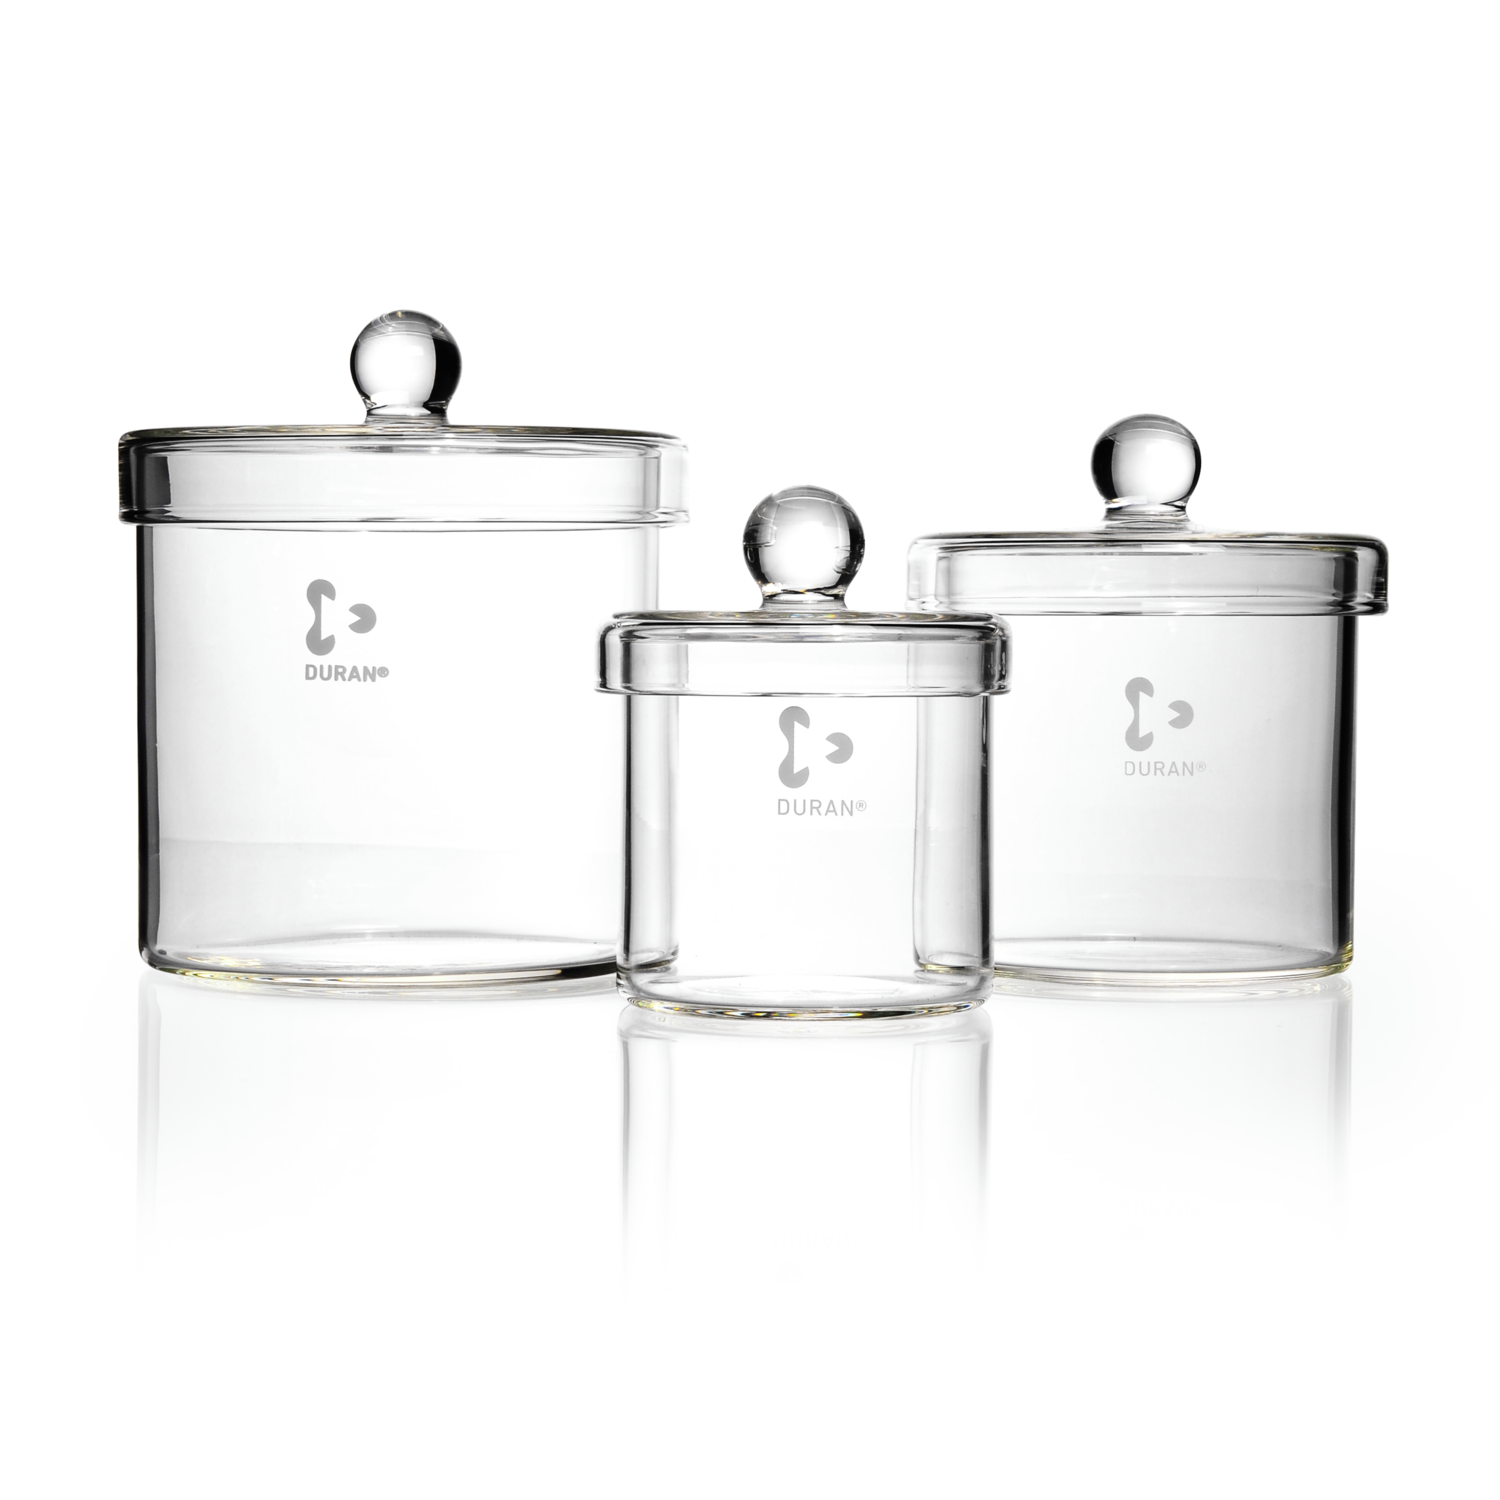 DURAN® Cylinder, with knobbed lid, Ø 260 x 260 mm